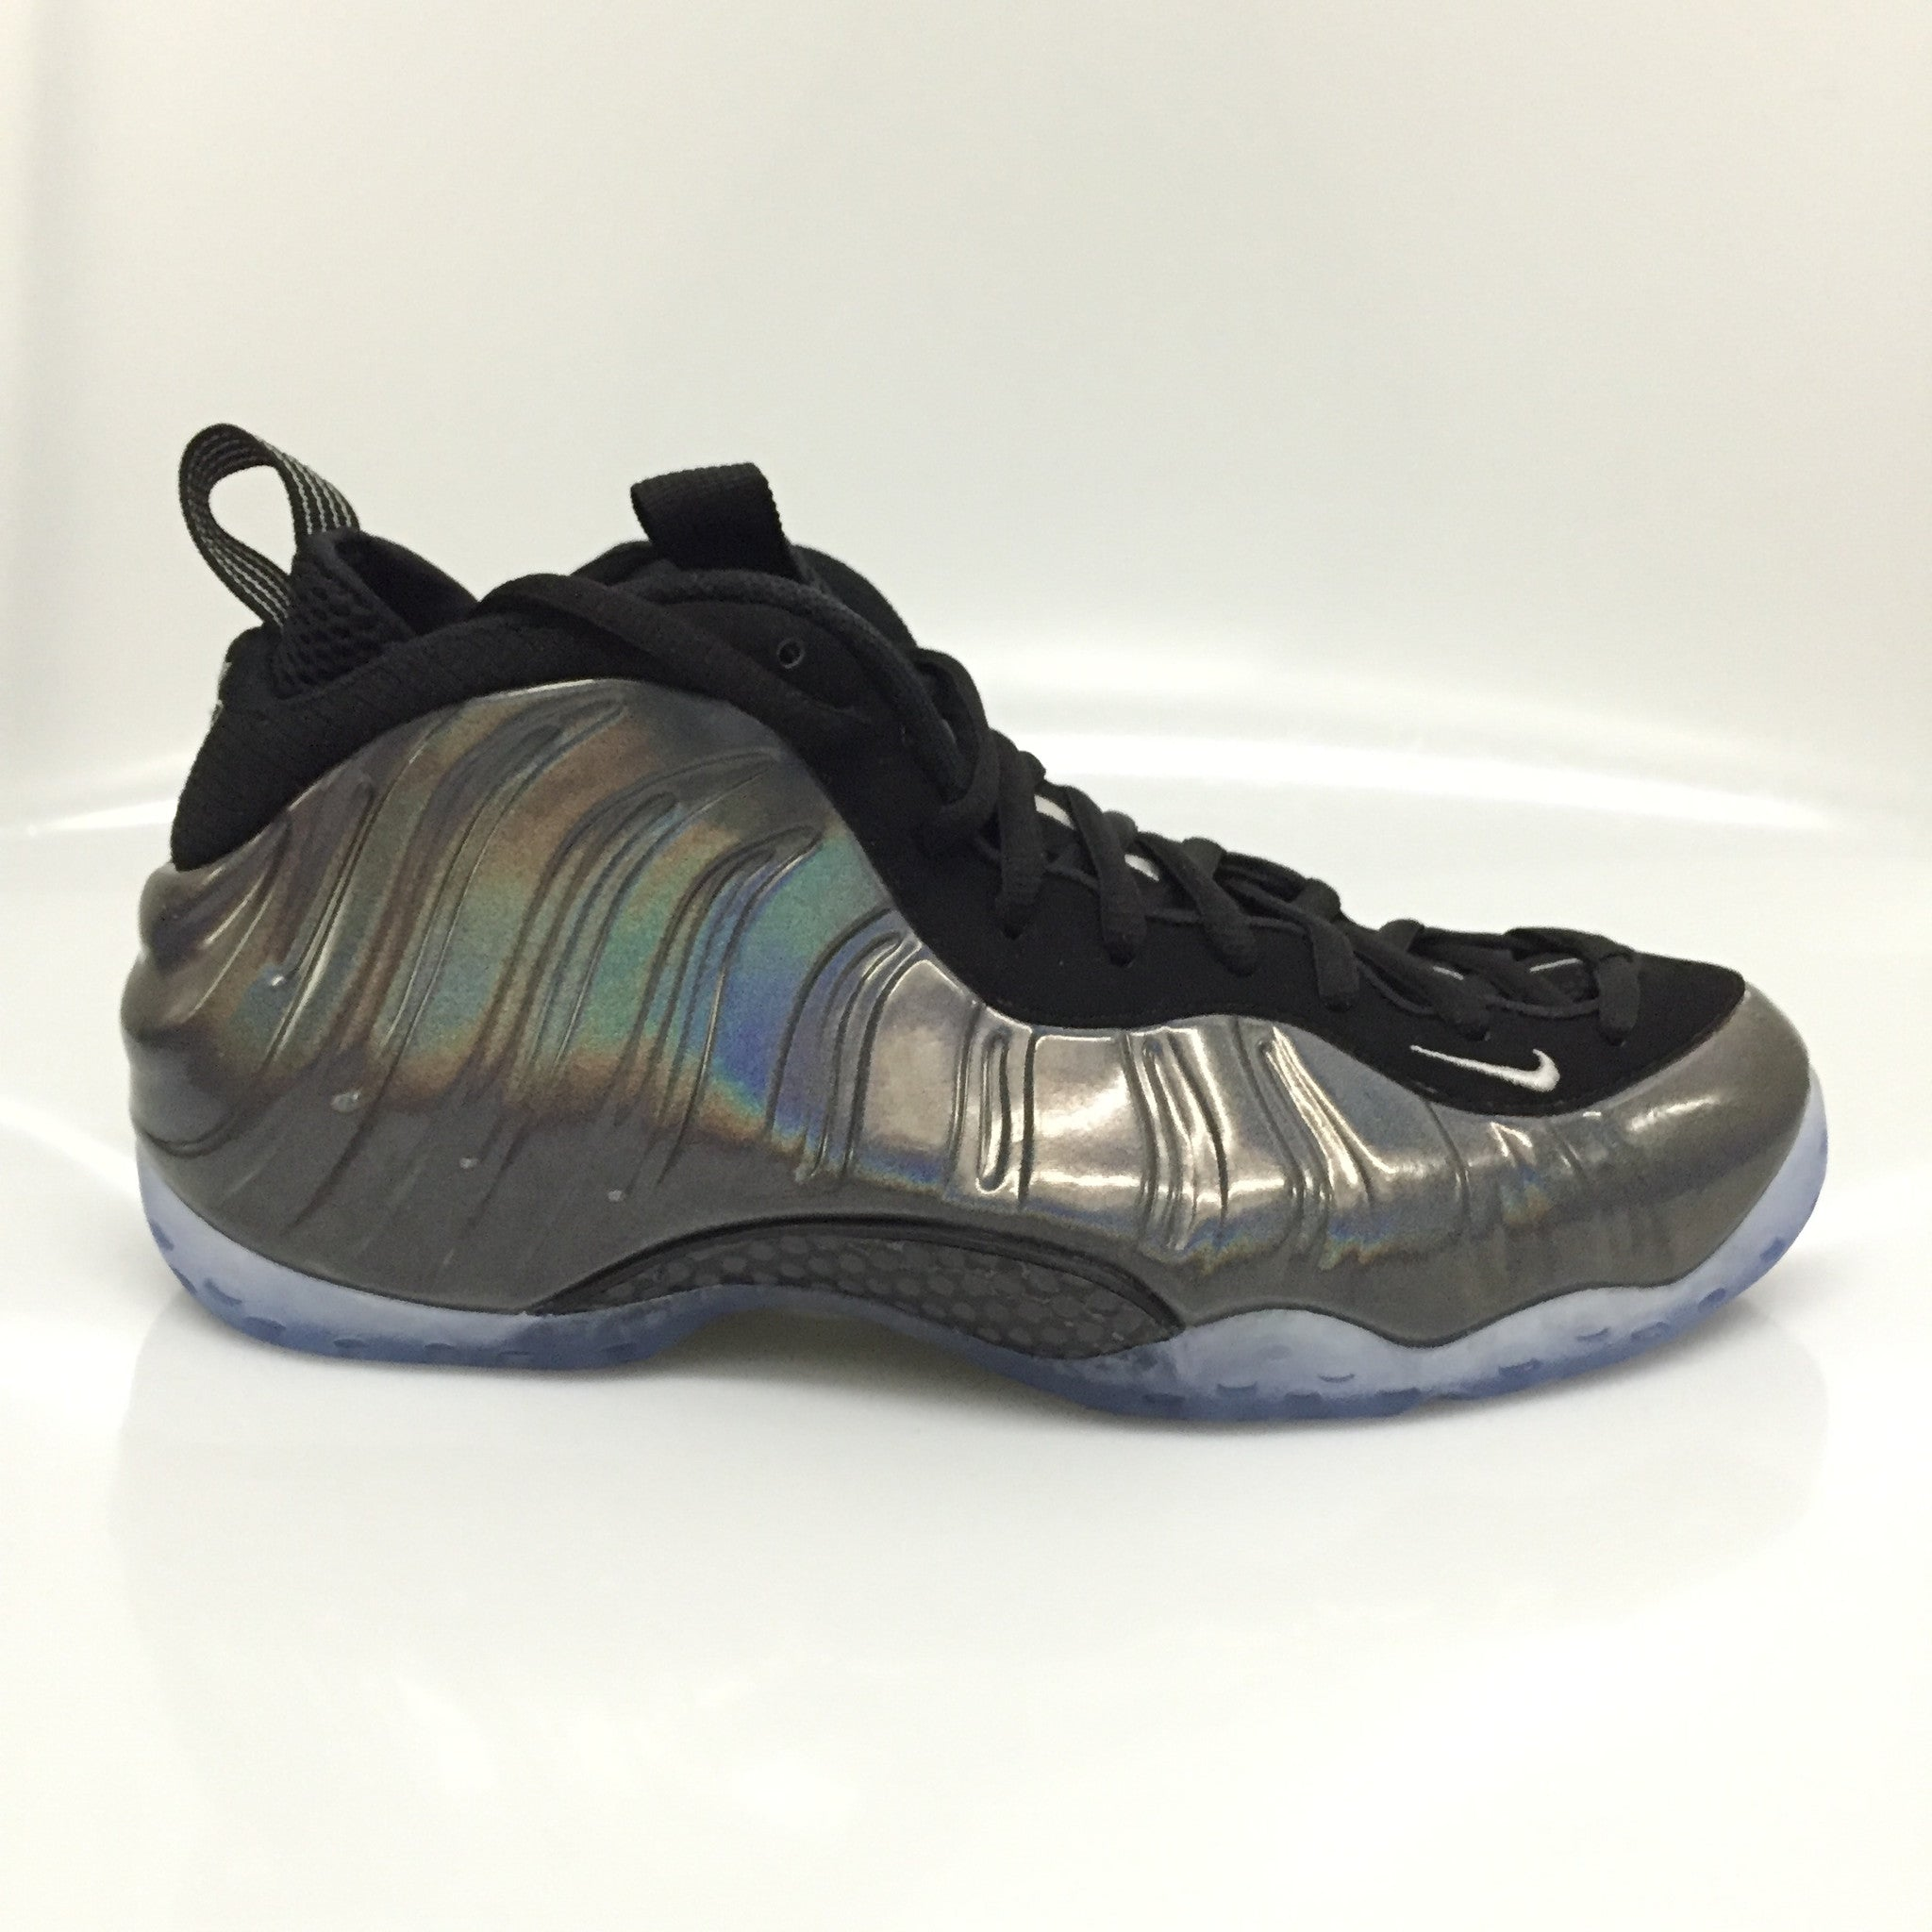 "Nike Air Foamposite One ""Hologram"" QS Size 11.5 DS"